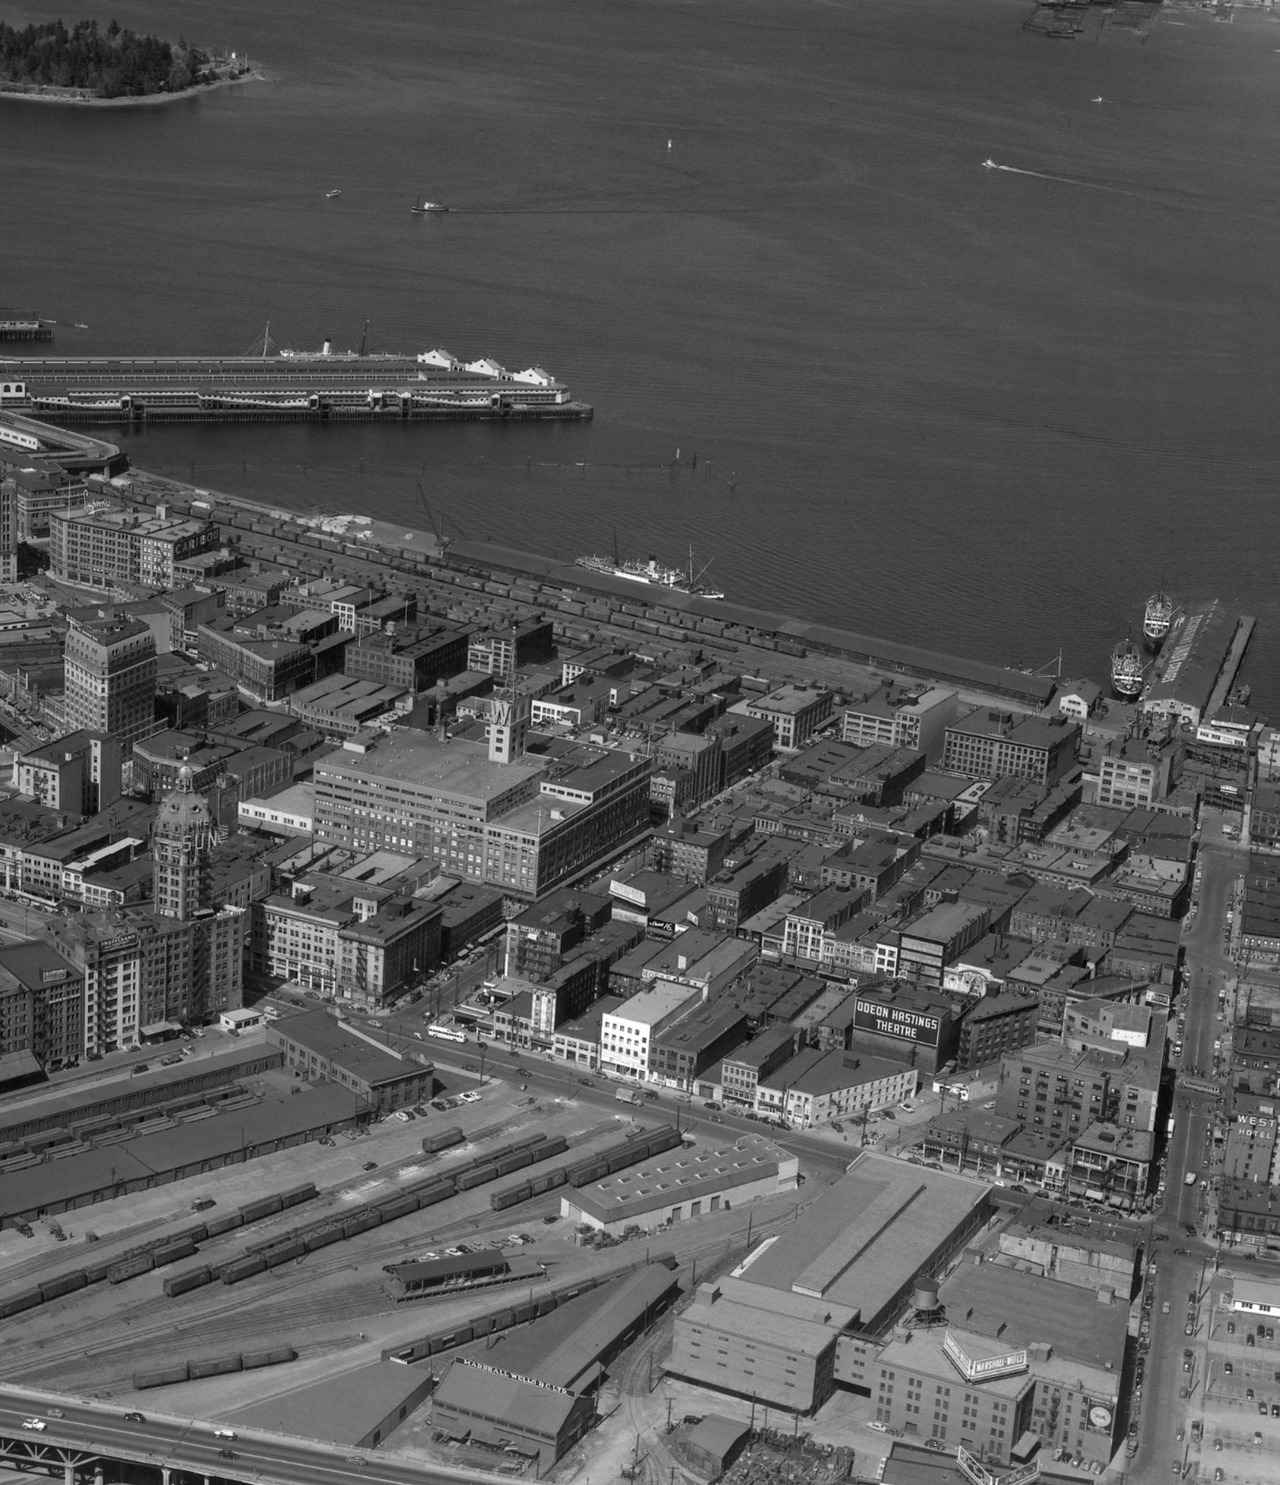 "Vancouver Aerial, 1951 In my routine scouring of the internet in search of old Vancouver photos, I came across a website filled with some amazing, high quality mid-century aerial shots of BC. The images are scans of photos taken by the website owner's father, who worked in the survey/drafting/mapping business from the late 1940s to the late 1960s. More photos are being added as they get scanned, and high quality prints are available for purchase.  This image is part of a 1951 photo of Vancouver north of the old Georgia Viaduct. It's worth looking at the large size and checking out what's changed and what remains. Here are some things that stuck out for me: The Woodward's ""W"" is still at the base of the mini-Eiffel Tower base. (The tower originally supported a bright search-light type beacon, which Ottawa made Woodward's shut down because the same lights were used at the airport, hence the giant ""W""). The Vancouver Sun was still housed in the Sun Tower. The previous tenant was a Seattle-based moving/storage company called Bekins, an ad for which can be seen on a building on the other side of Pender. Simpson's department store is in The Landing building (where Steamwork's restaurant now is) and the International Village site was still part of the rail yards. The building marked ""Odeon Hastings Theatre"" was originally the lavish second Pantages Theatre (and later the Beacon) built in 1917. That site is now the new, Arthur Erickson designed, Portland Hotel. And at the bottom left is the old Georgia Viaduct traversing the train yard and parking lots; that area has since been transformed with a soccer field, park, mall, Chinese garden, and condos.  Source: VintageAirPhotos.com"